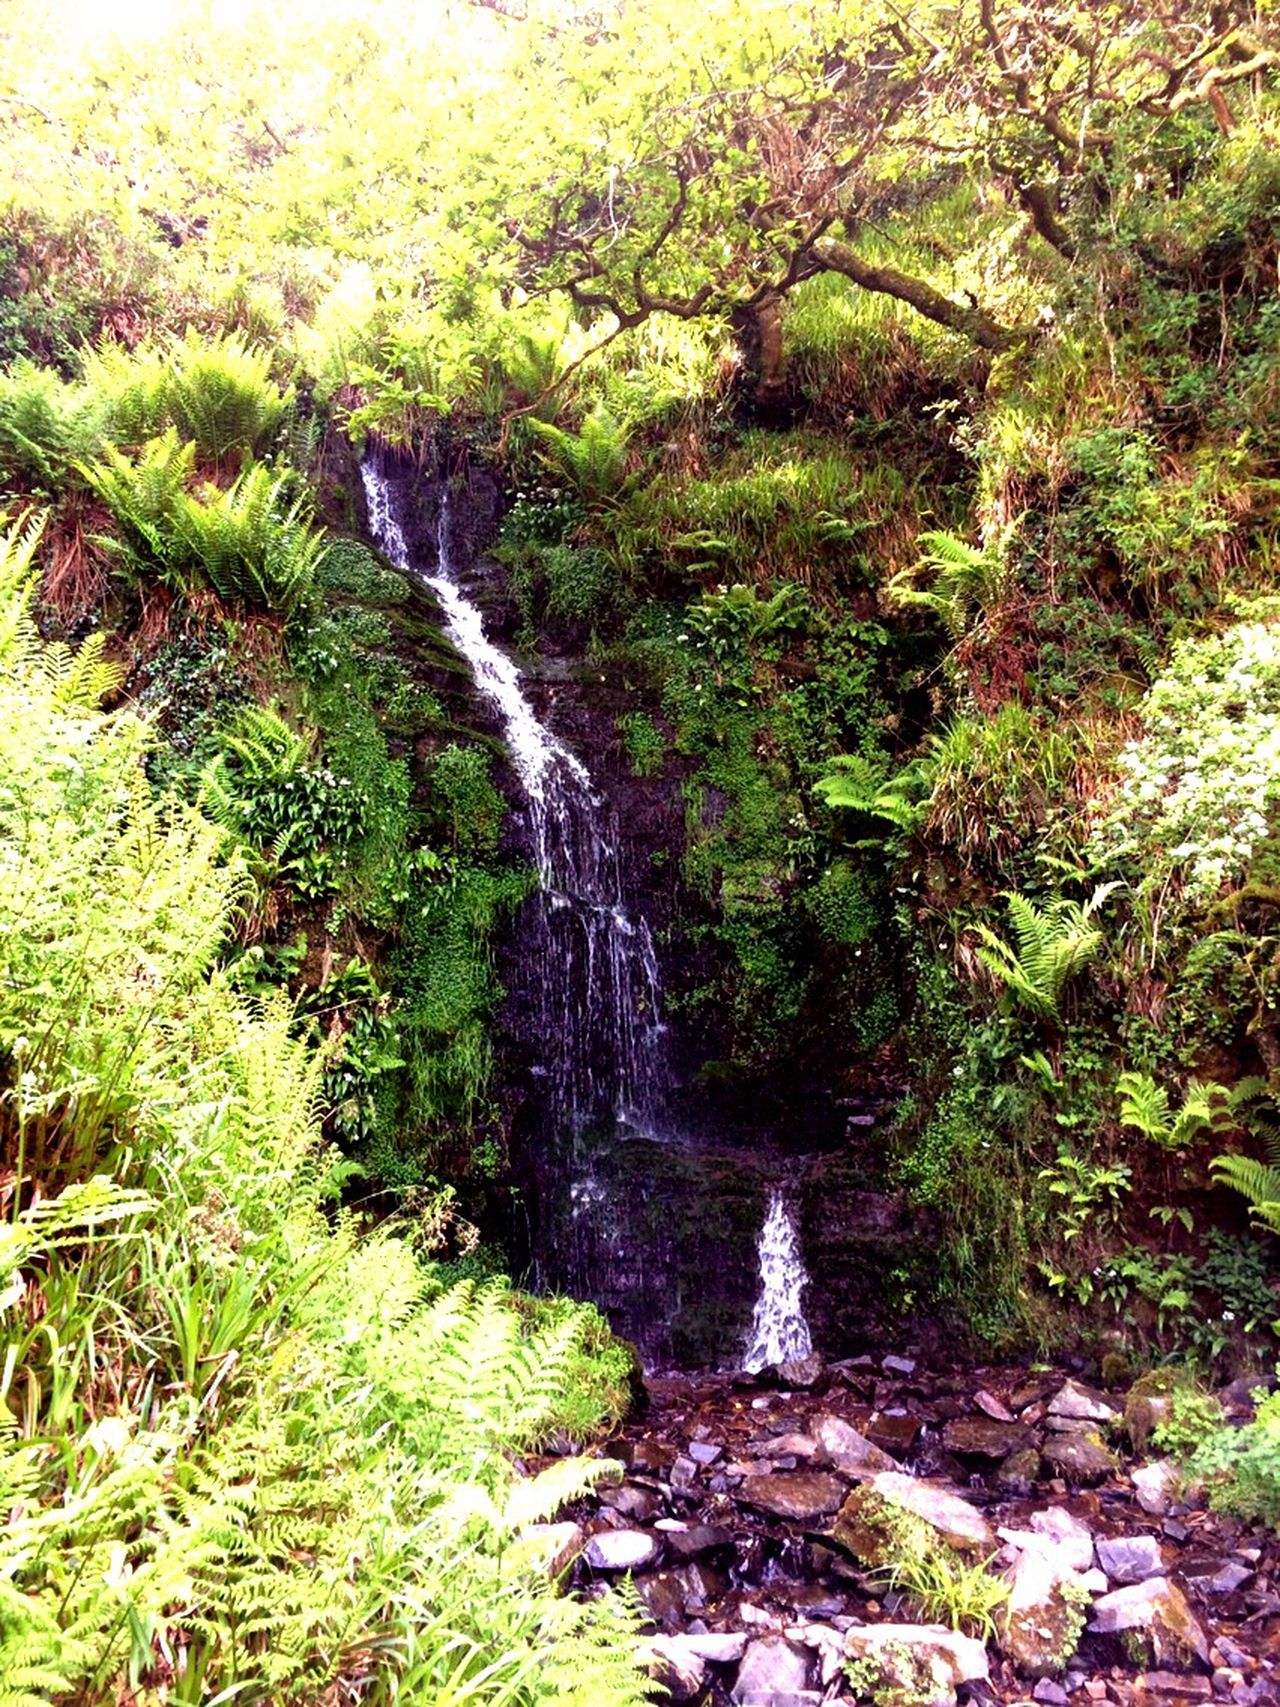 The natural down fall Nature Water Flowing Water Beauty In Nature Forest Stream Waterfall No People Day Outdoors Grass Tranquility Green Color Motion Tranquil Scene Scenics Growth Tree North Devon HeddonsMouth